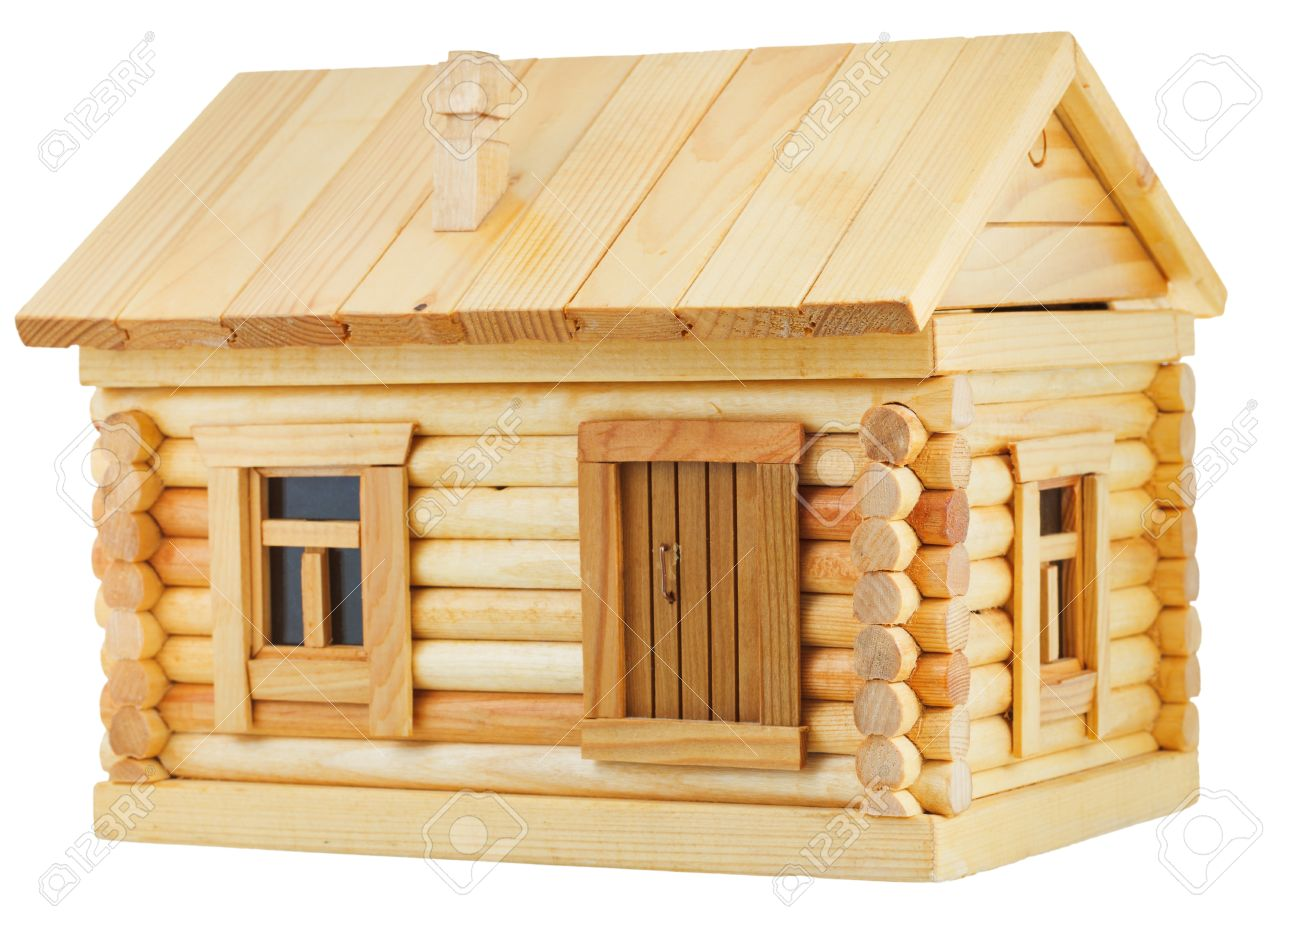 Stock photo model of simple village wooden log house isolated on white background